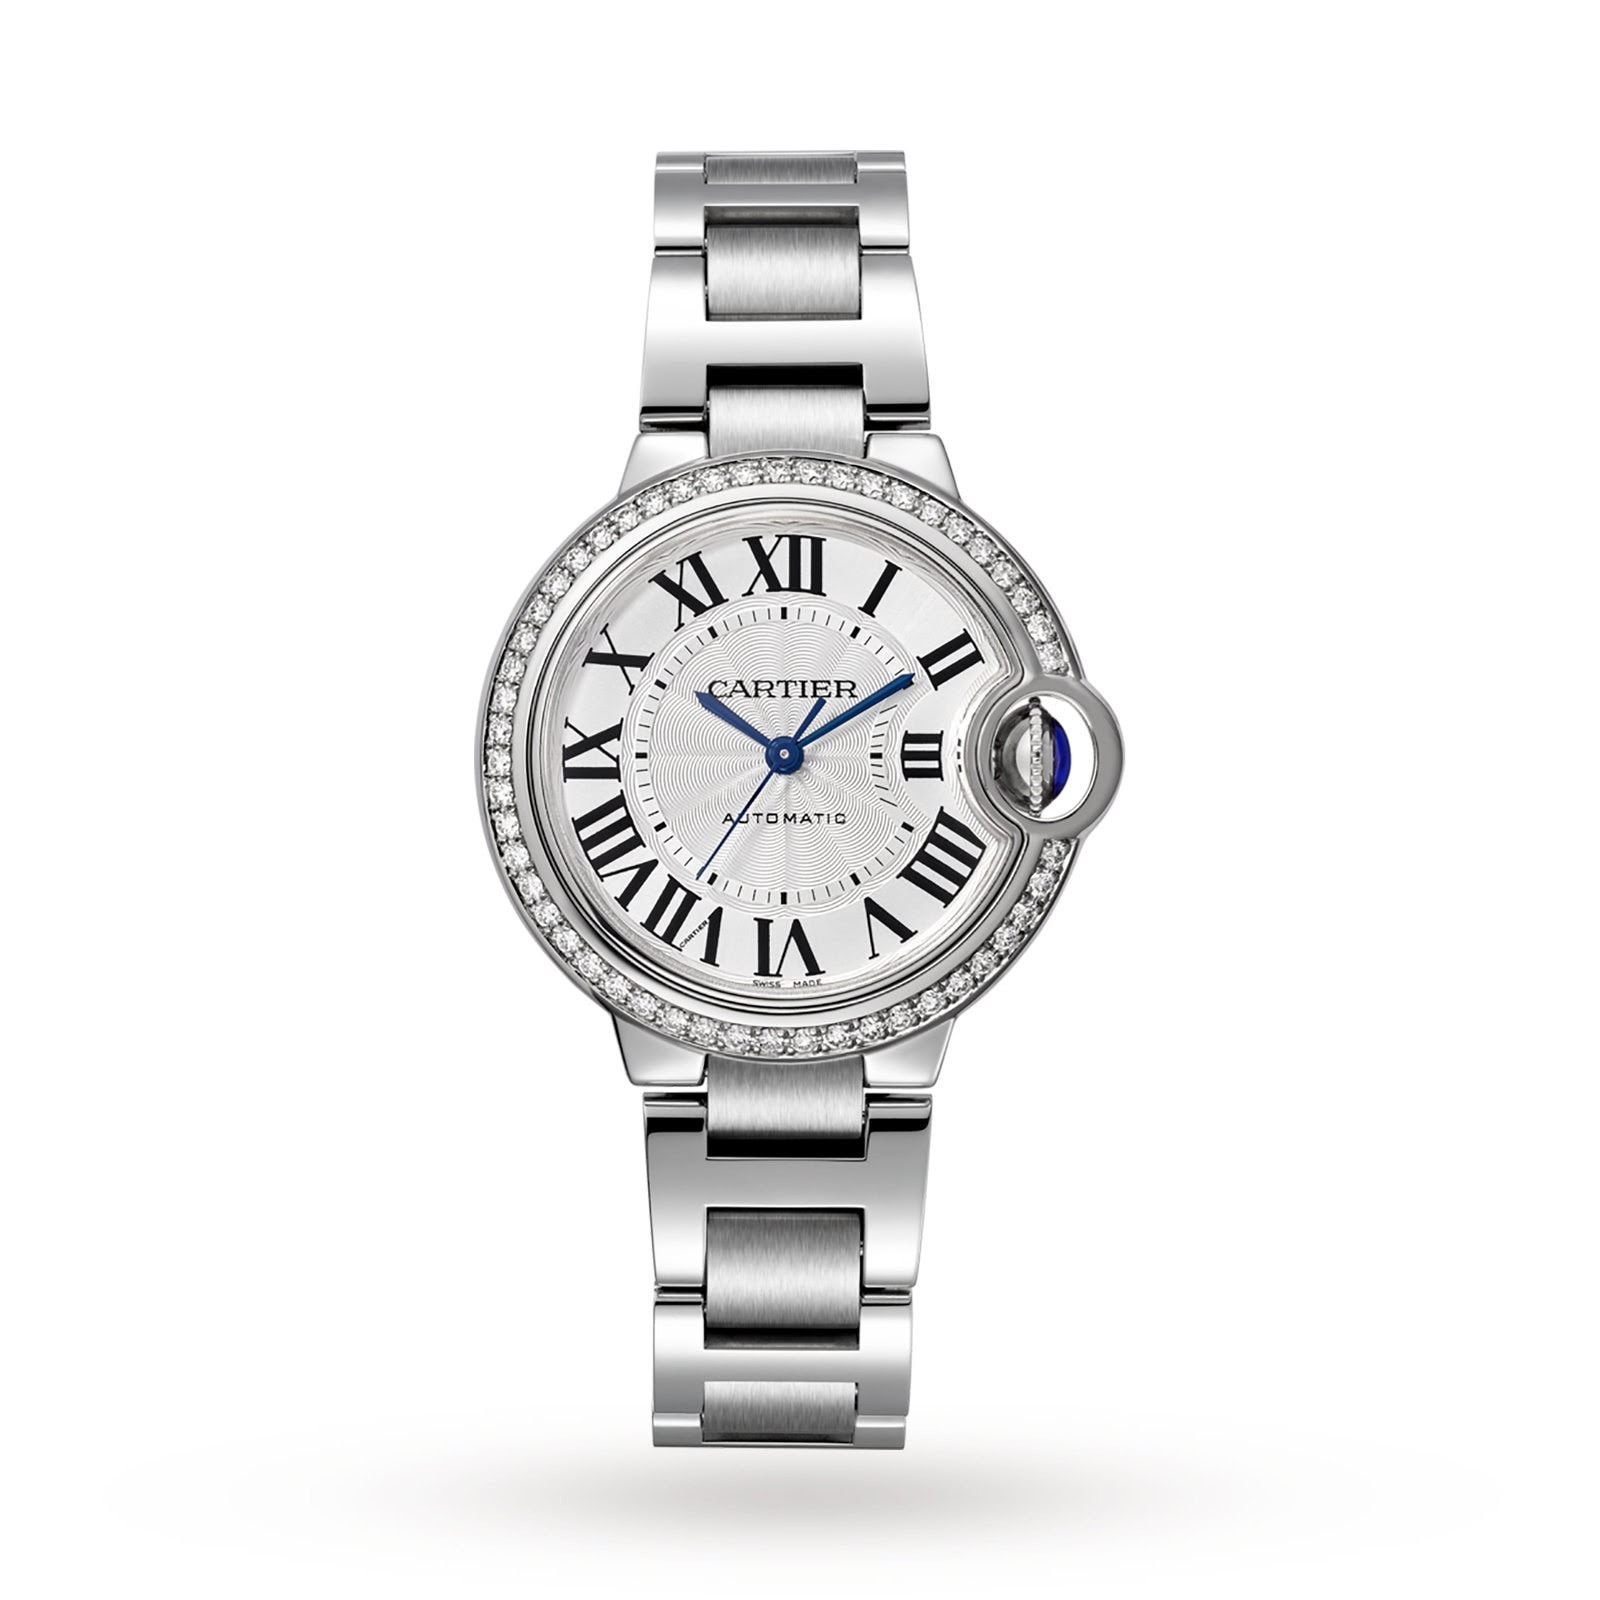 Unique Features of Cartier Watches